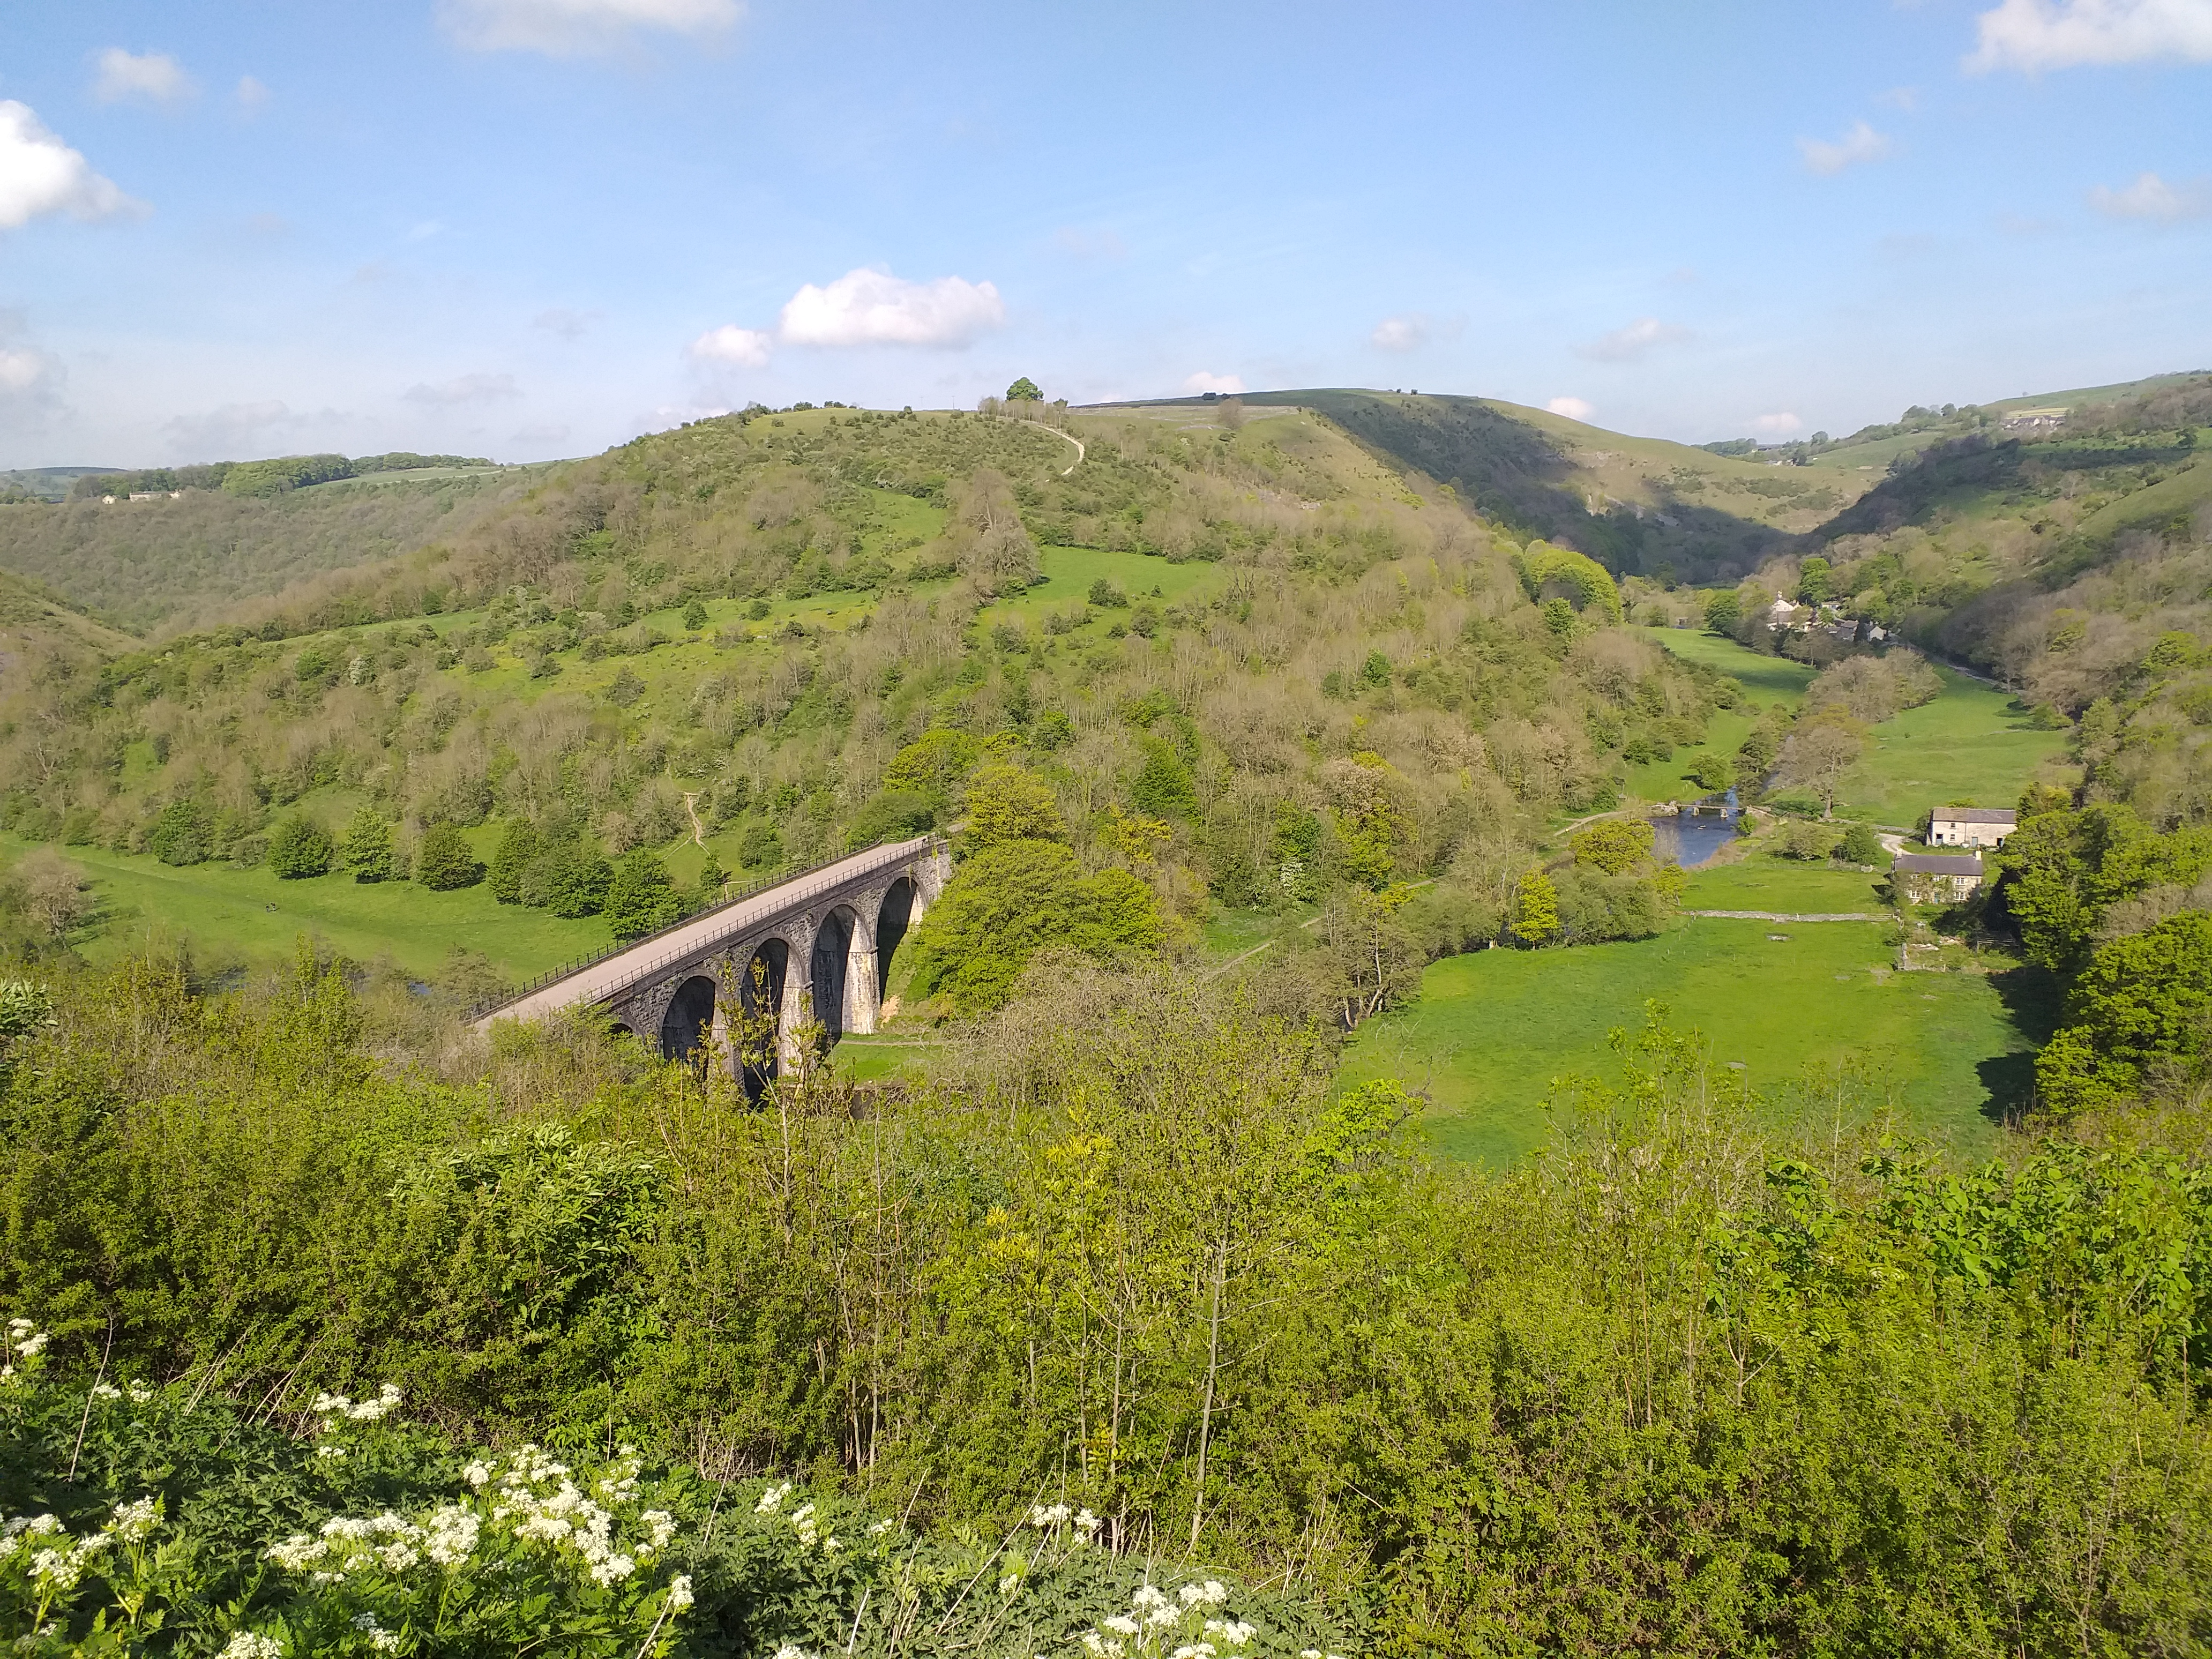 As view over the Monsal Valley with rolling green hills and the stone railway viaduct in the centre, blue skies